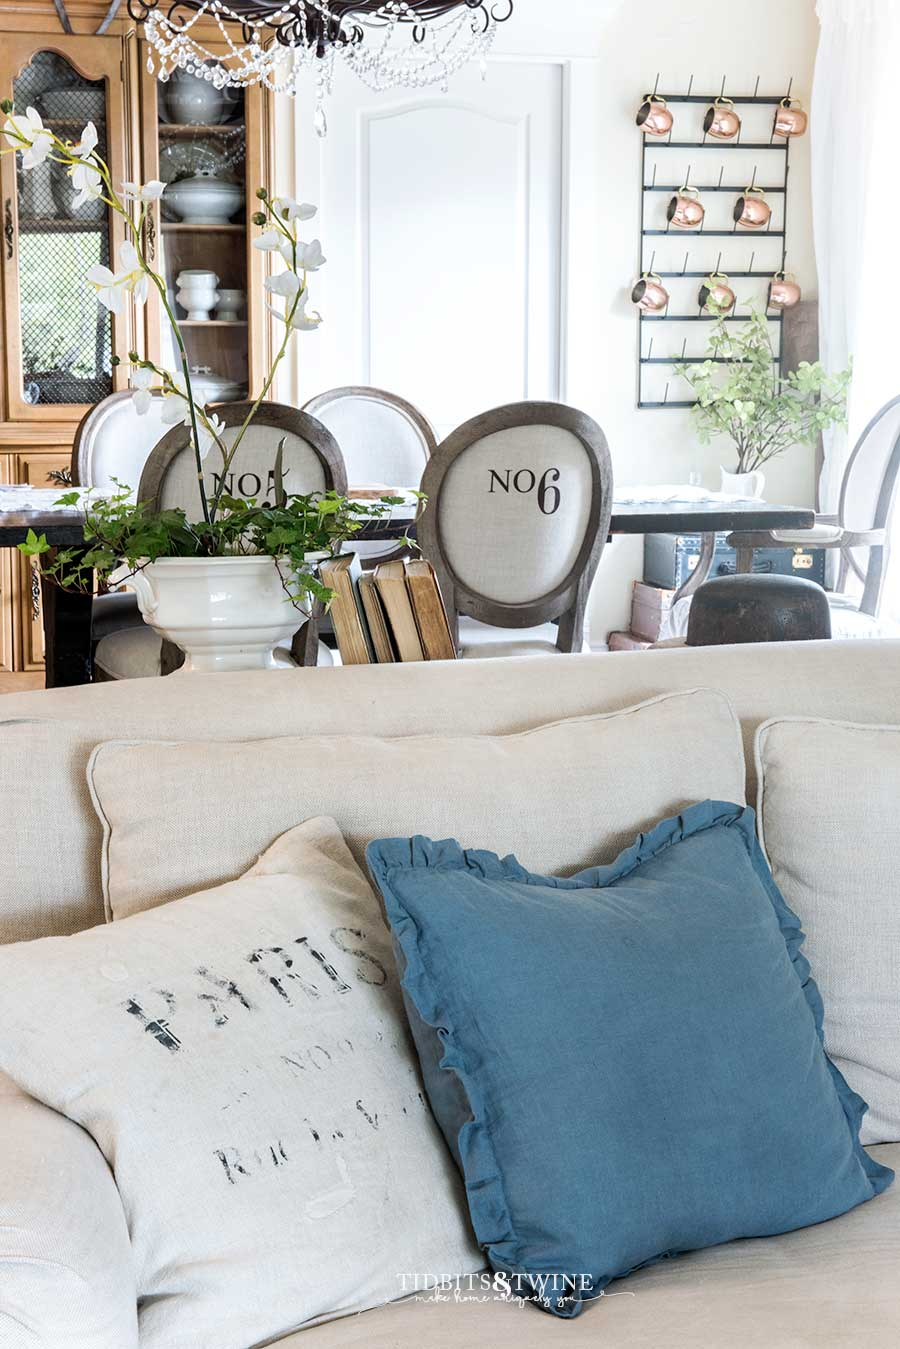 Grain sack pillows on a linen slipcovered sofa. Numbered dining chairs.